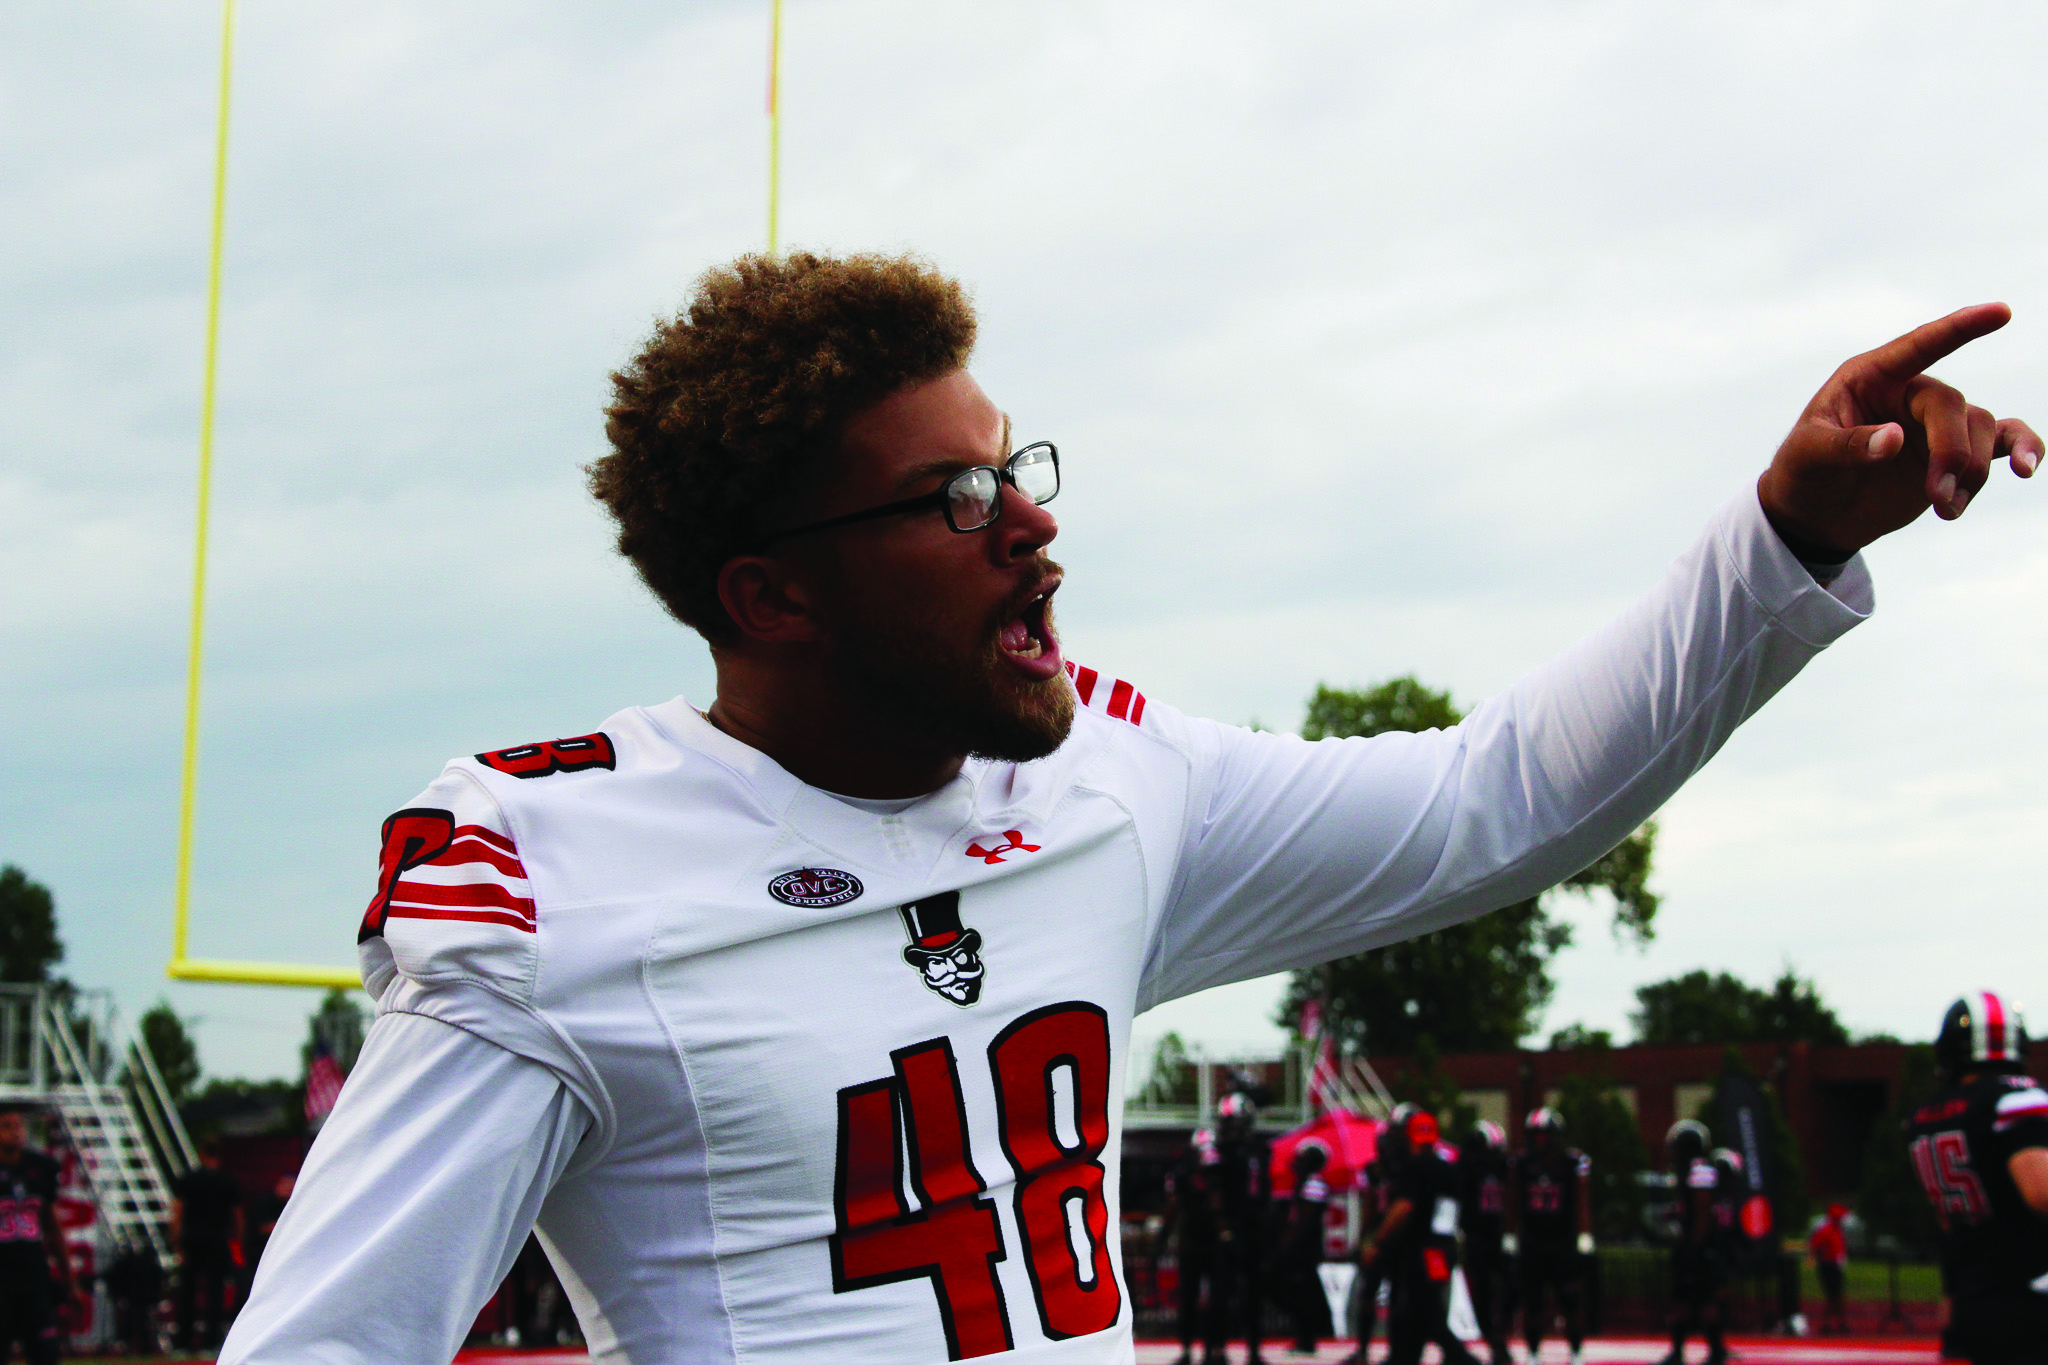 Shaun Whittinghill shouts from the sidelines in the 2018 season opener.| THE ALL STATE ARCHIVES